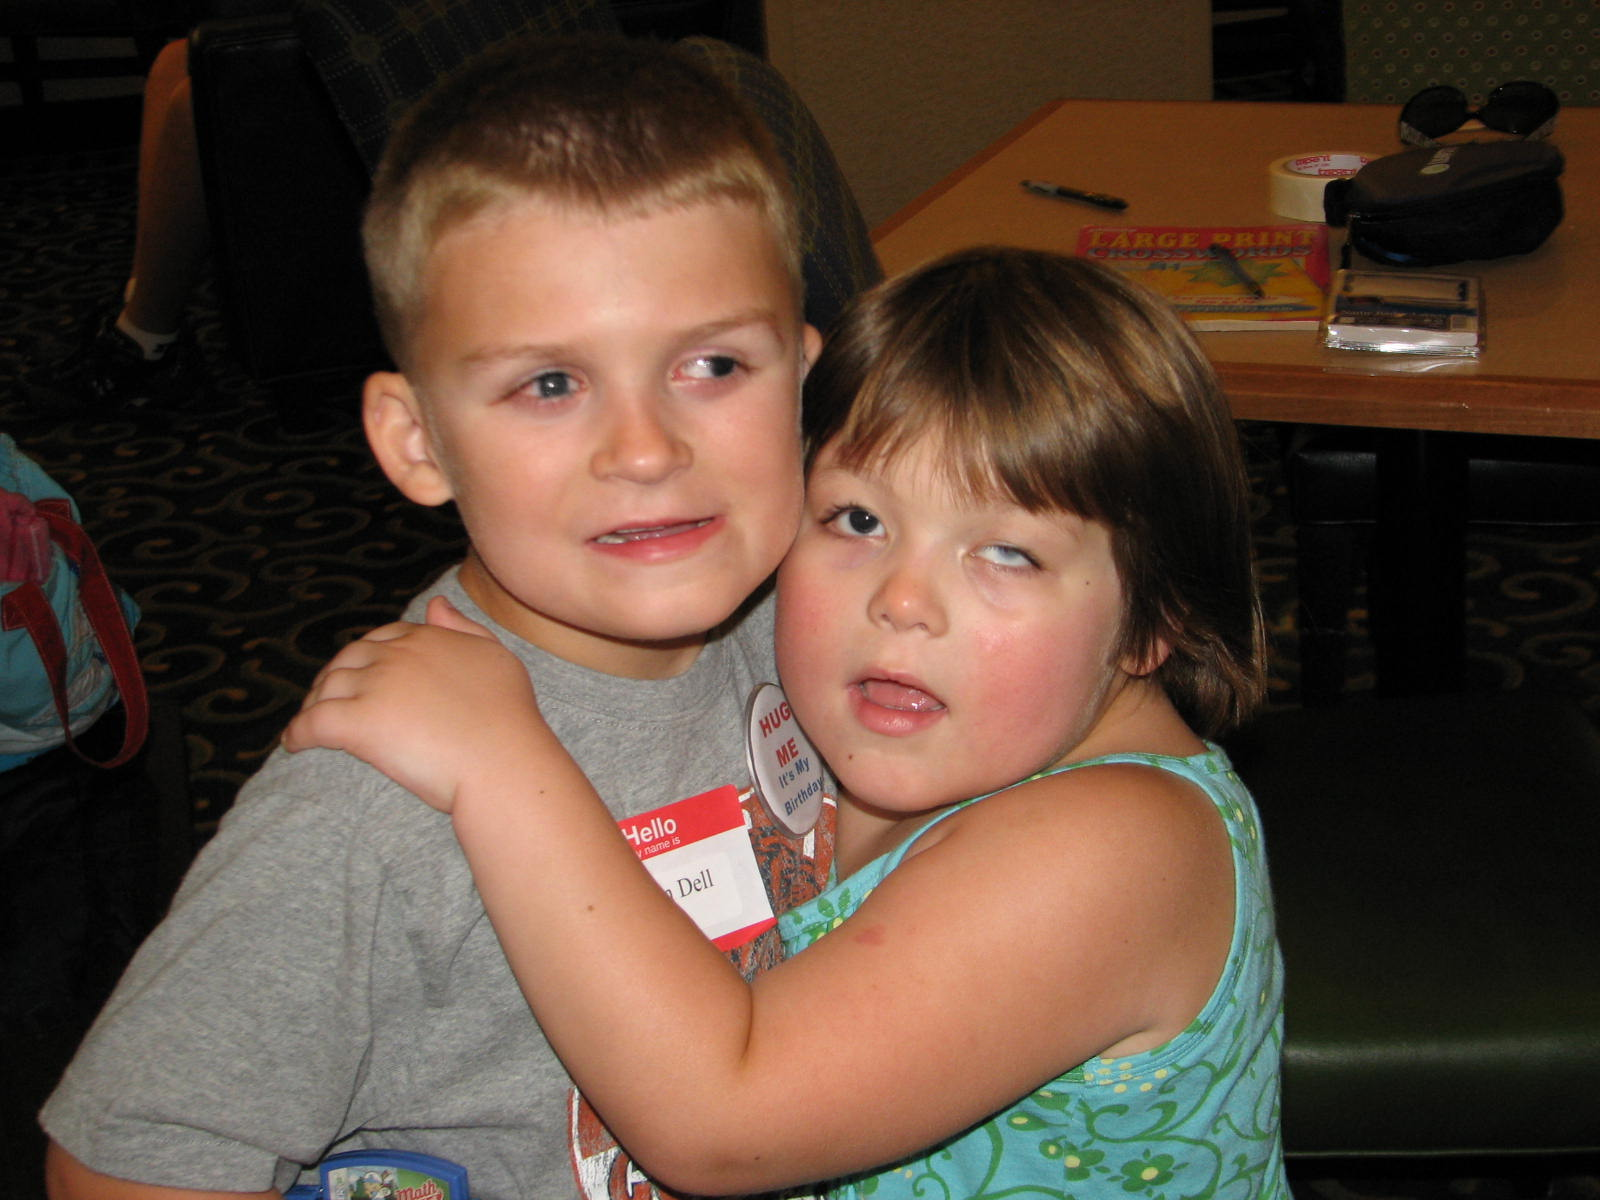 wagr syndrome Symptoms of wagr syndrome including 102 medical symptoms and signs of wagr syndrome, alternative diagnoses, misdiagnosis, and correct diagnosis for wagr syndrome signs or wagr syndrome symptoms.